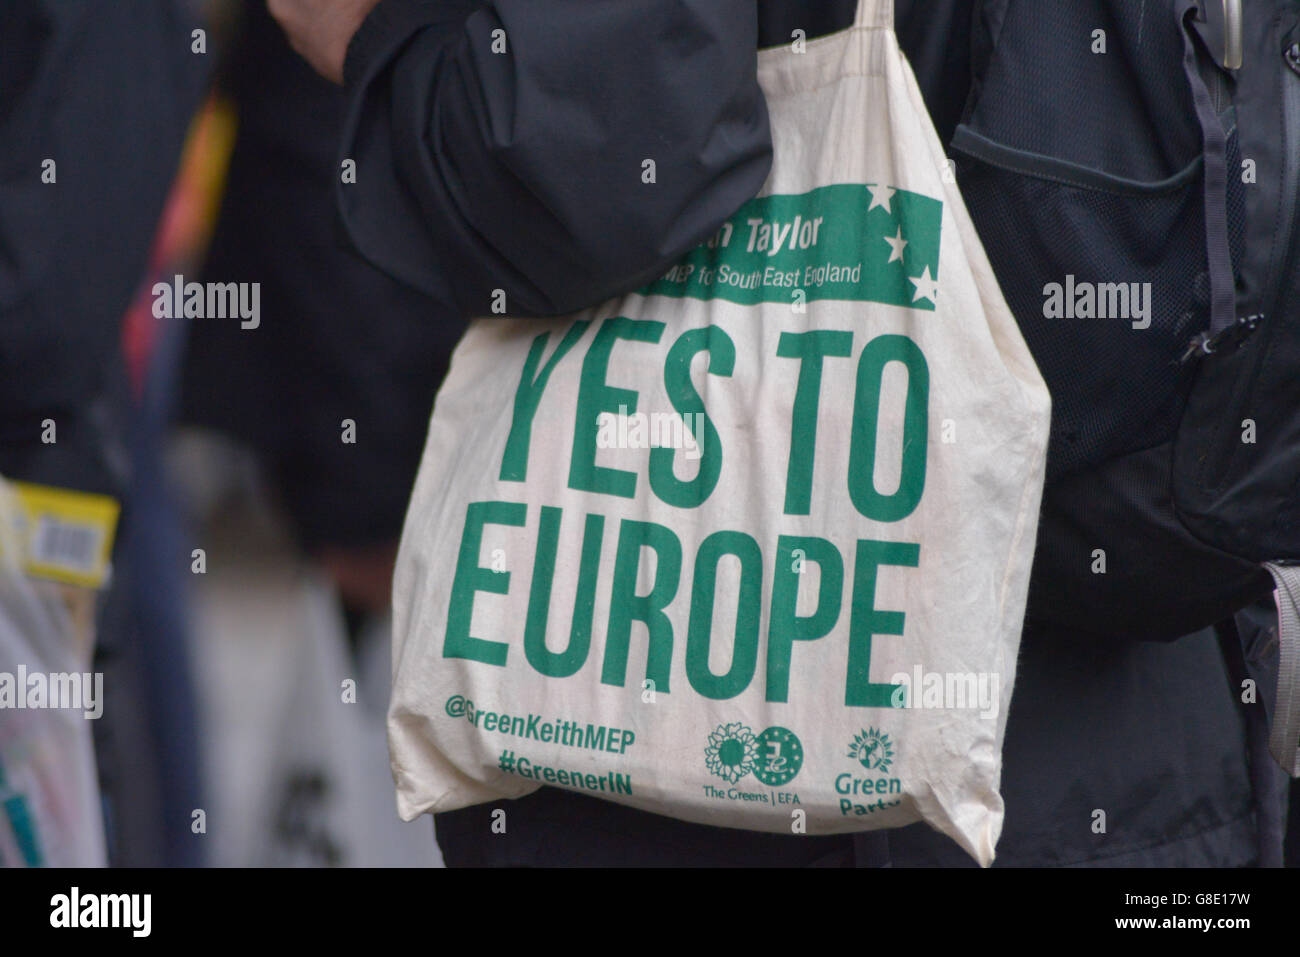 "Manchester, UK. 28th June, 2016. A person holding a canvas bag with the message ""Yes To Europe"" at the 'Undo Brexit' Stock Photo"